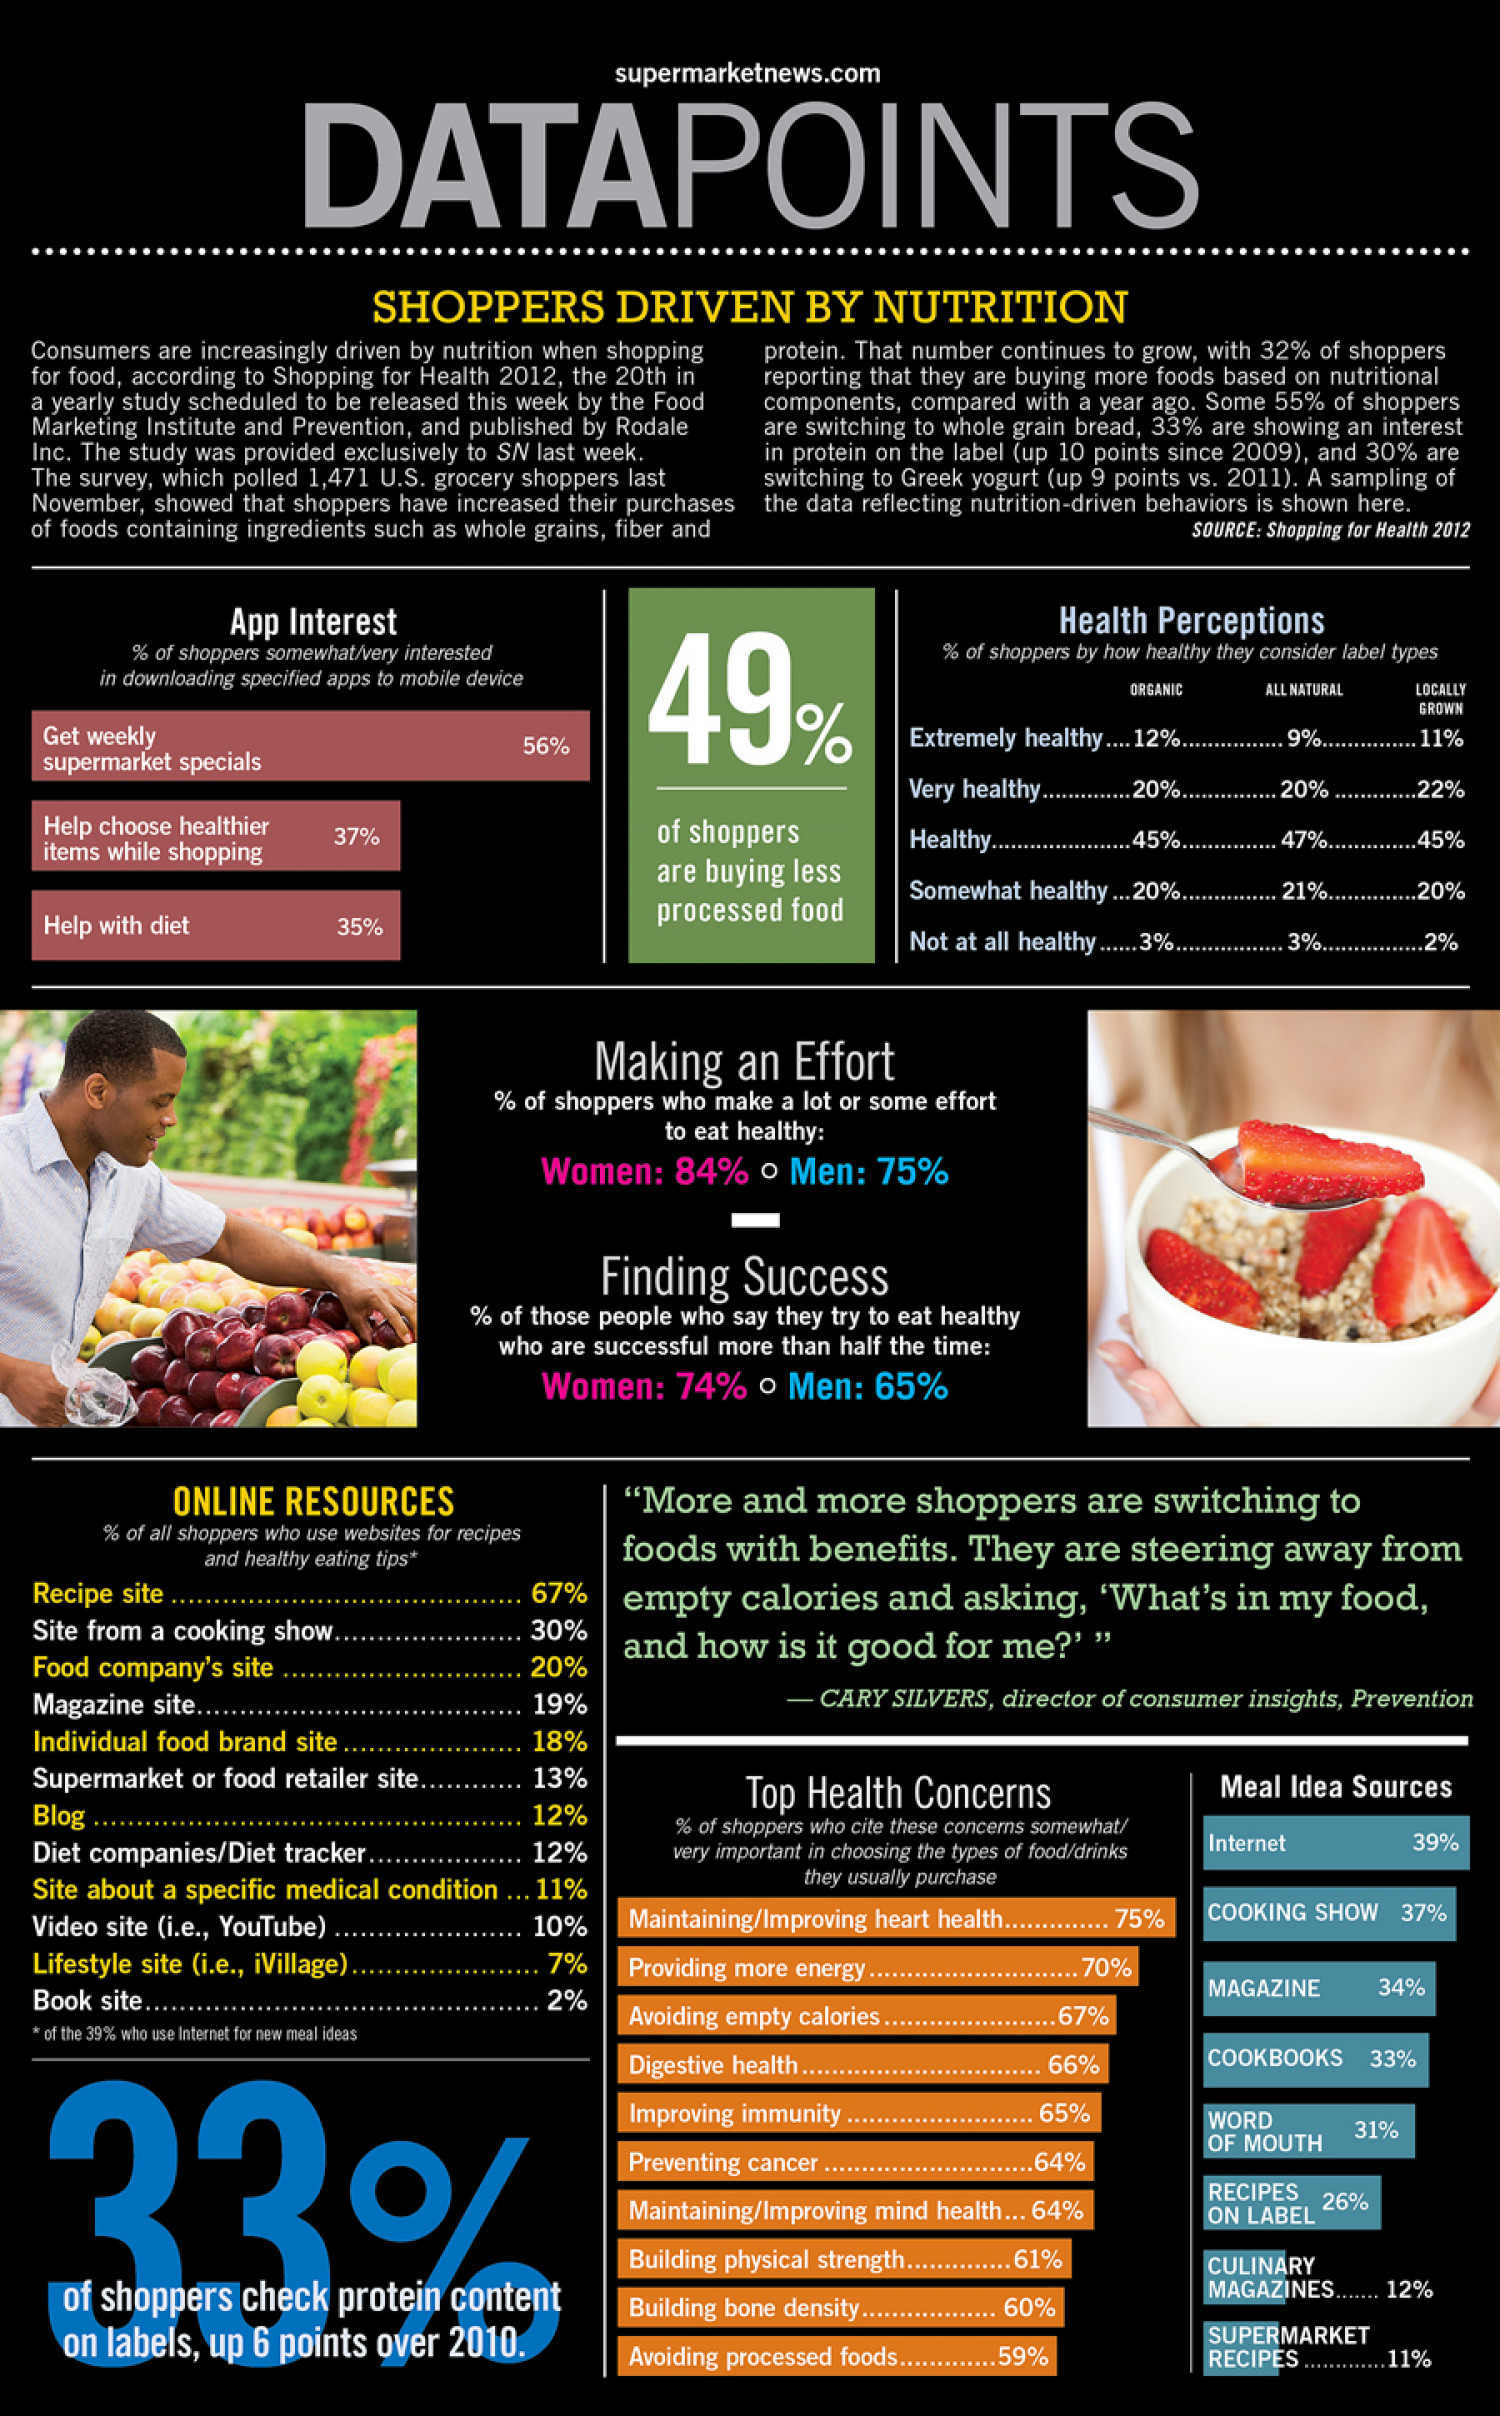 Shoppers Driven By Nutrition Infographic